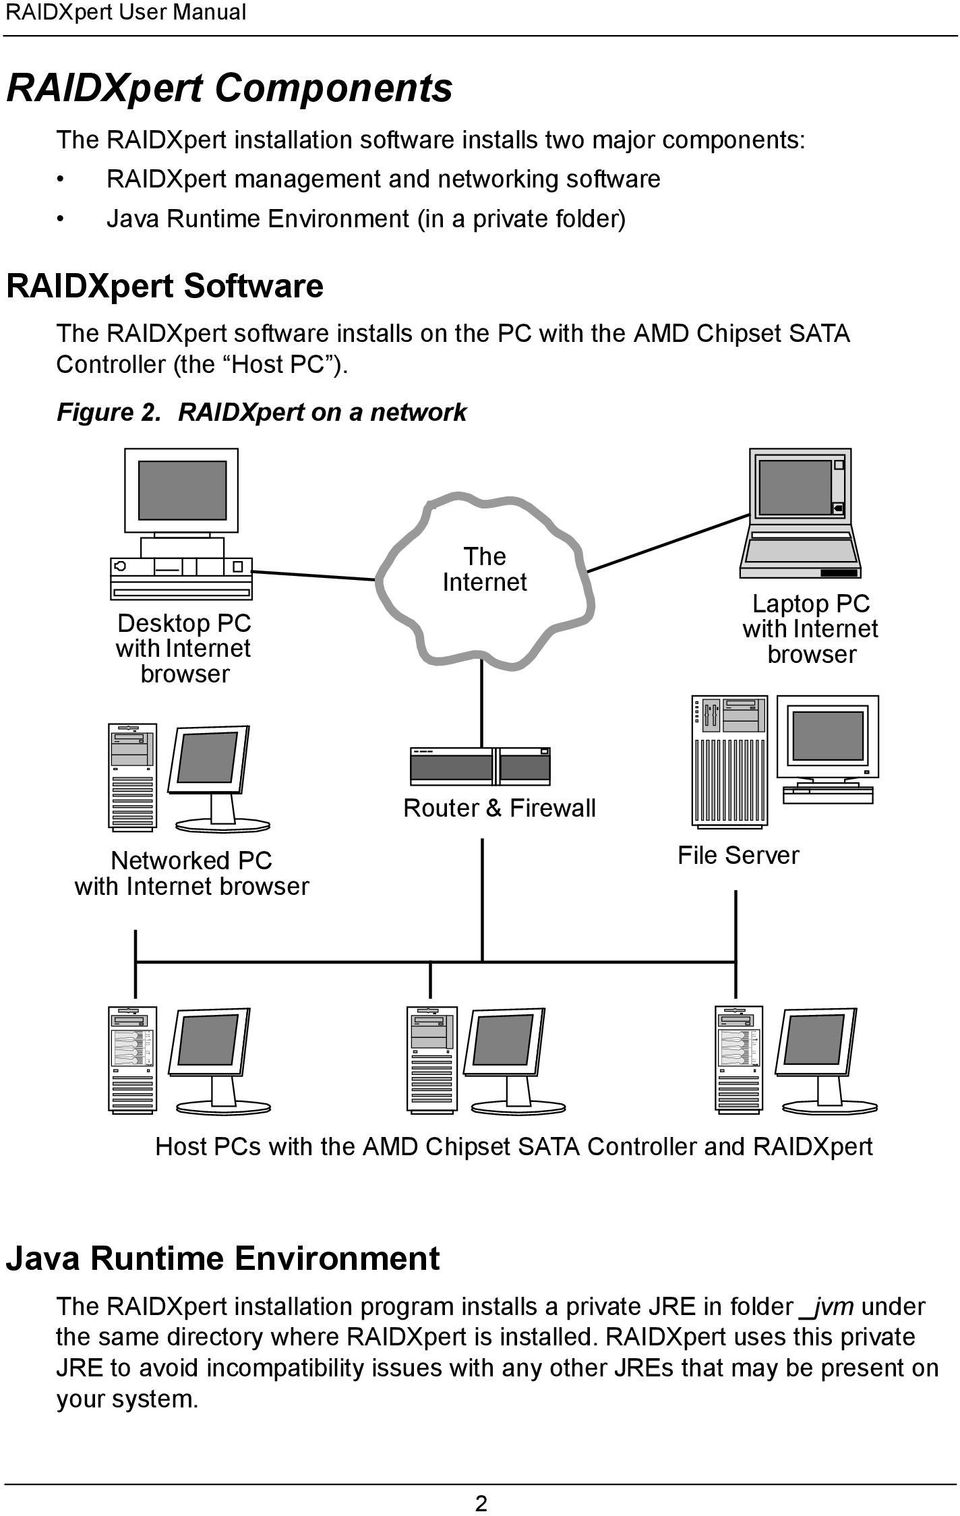 RAIDXpert on a network Desktop PC with Internet browser The Internet Laptop PC with Internet browser Networked PC with Internet browser Router & Firewall File Server Host PCs with the AMD Chipset